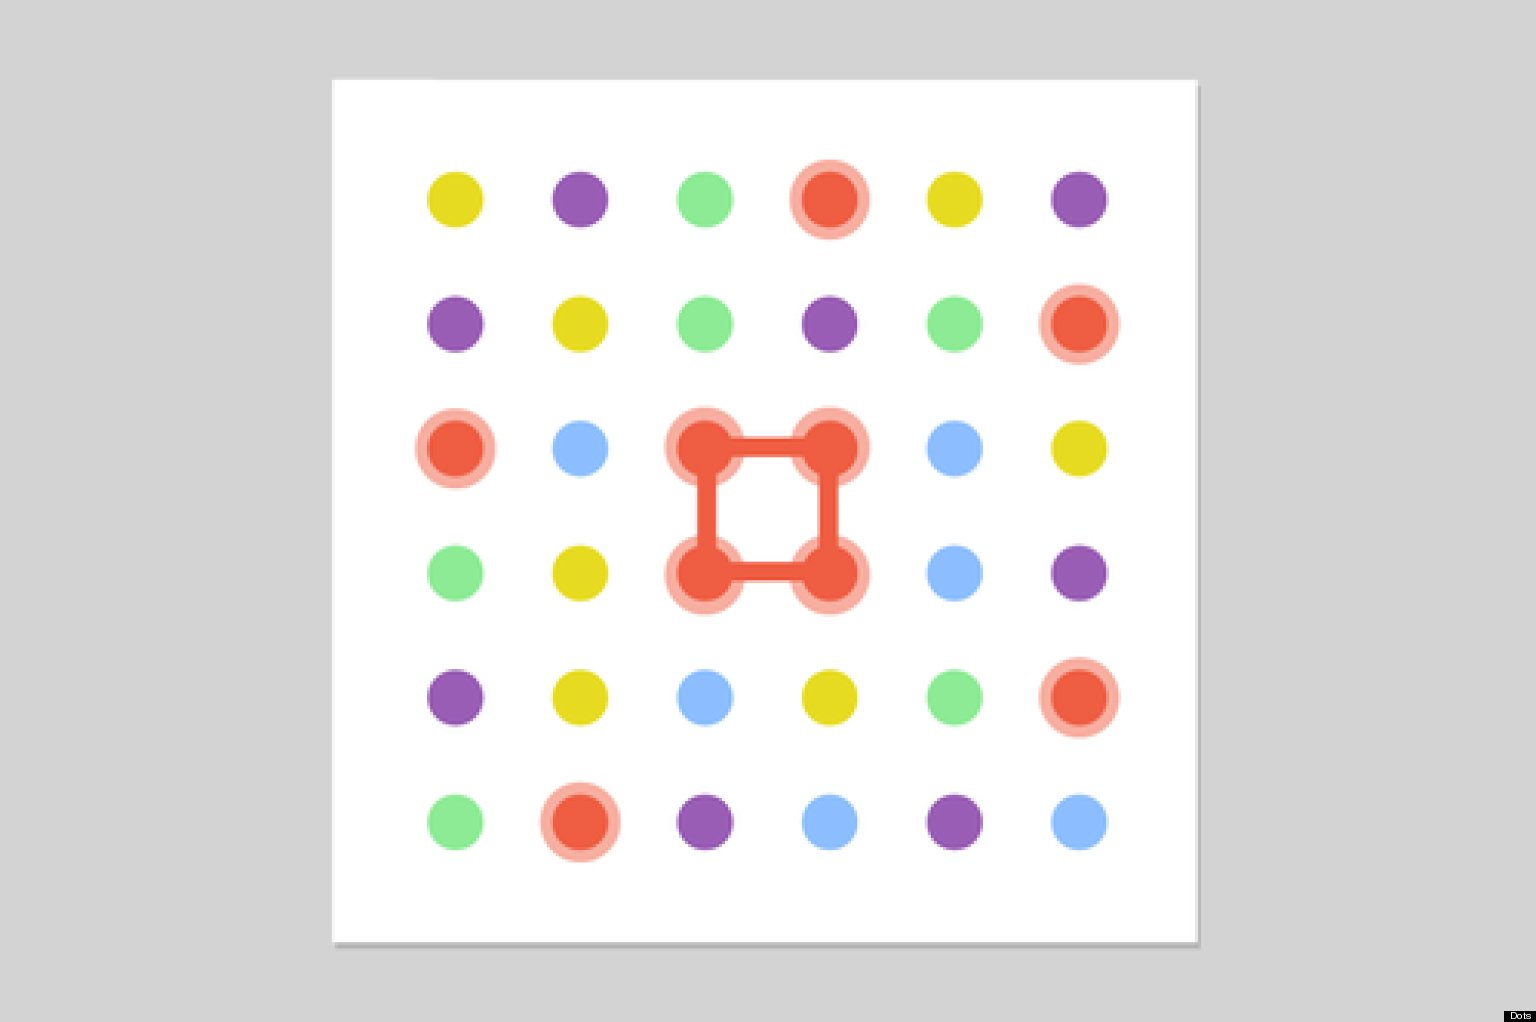 Colorful Dots Game Dots Game Strategy 7 Pro Tips